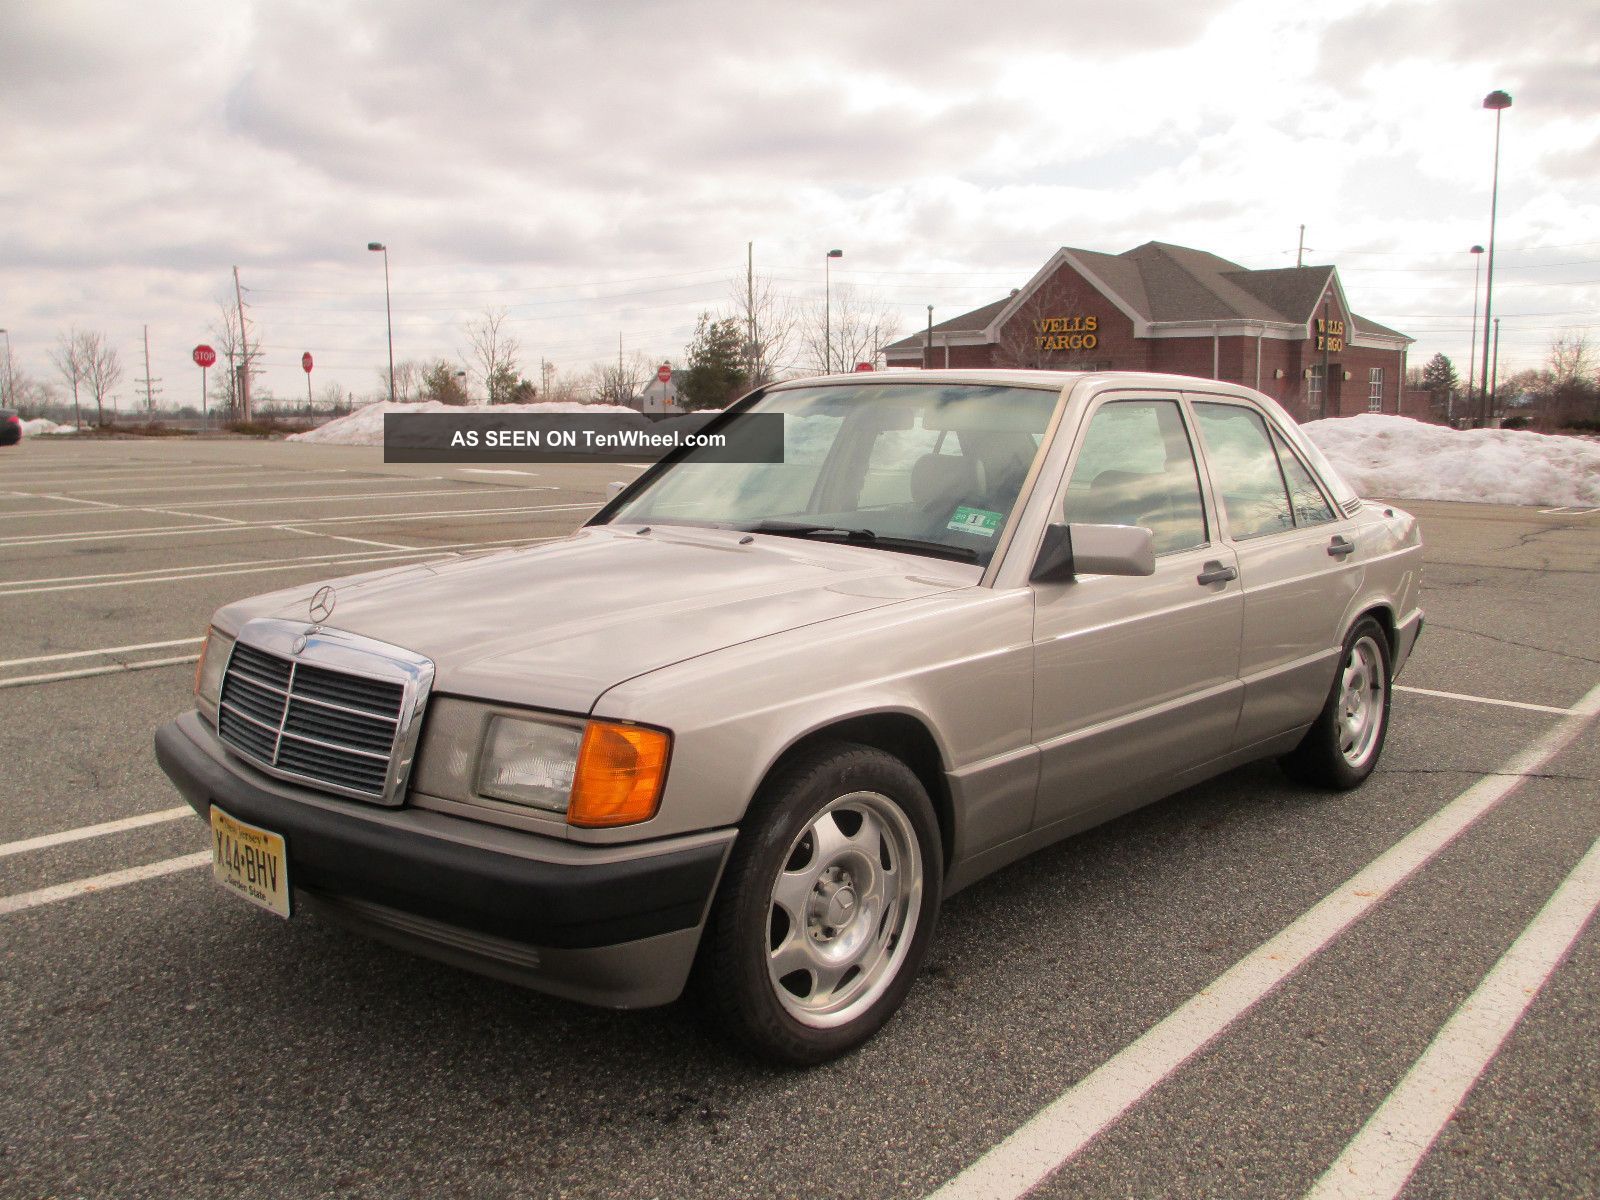 1991 mercedes benz 190e 2 6 i6 automatic smoked silver for 1991 mercedes benz 190e